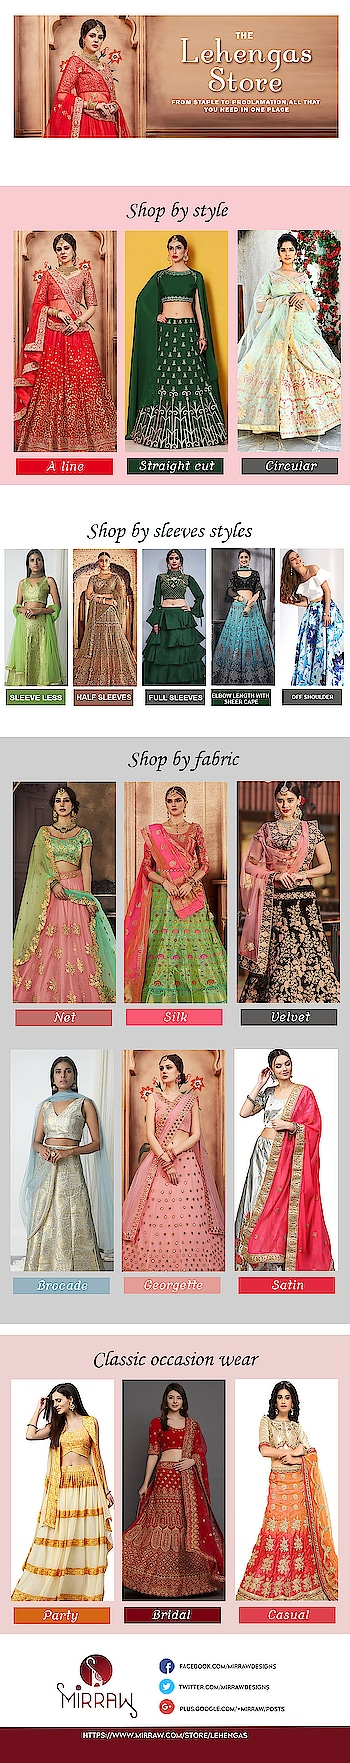 The lehengas store-  shop lehengas by style, sleeves, fabric and occasion wise. To see more collection visit a website : https://www.mirraw.com/store/lehengas  #LehengaOnline, #LehengasOnline, #DesignerLehenga